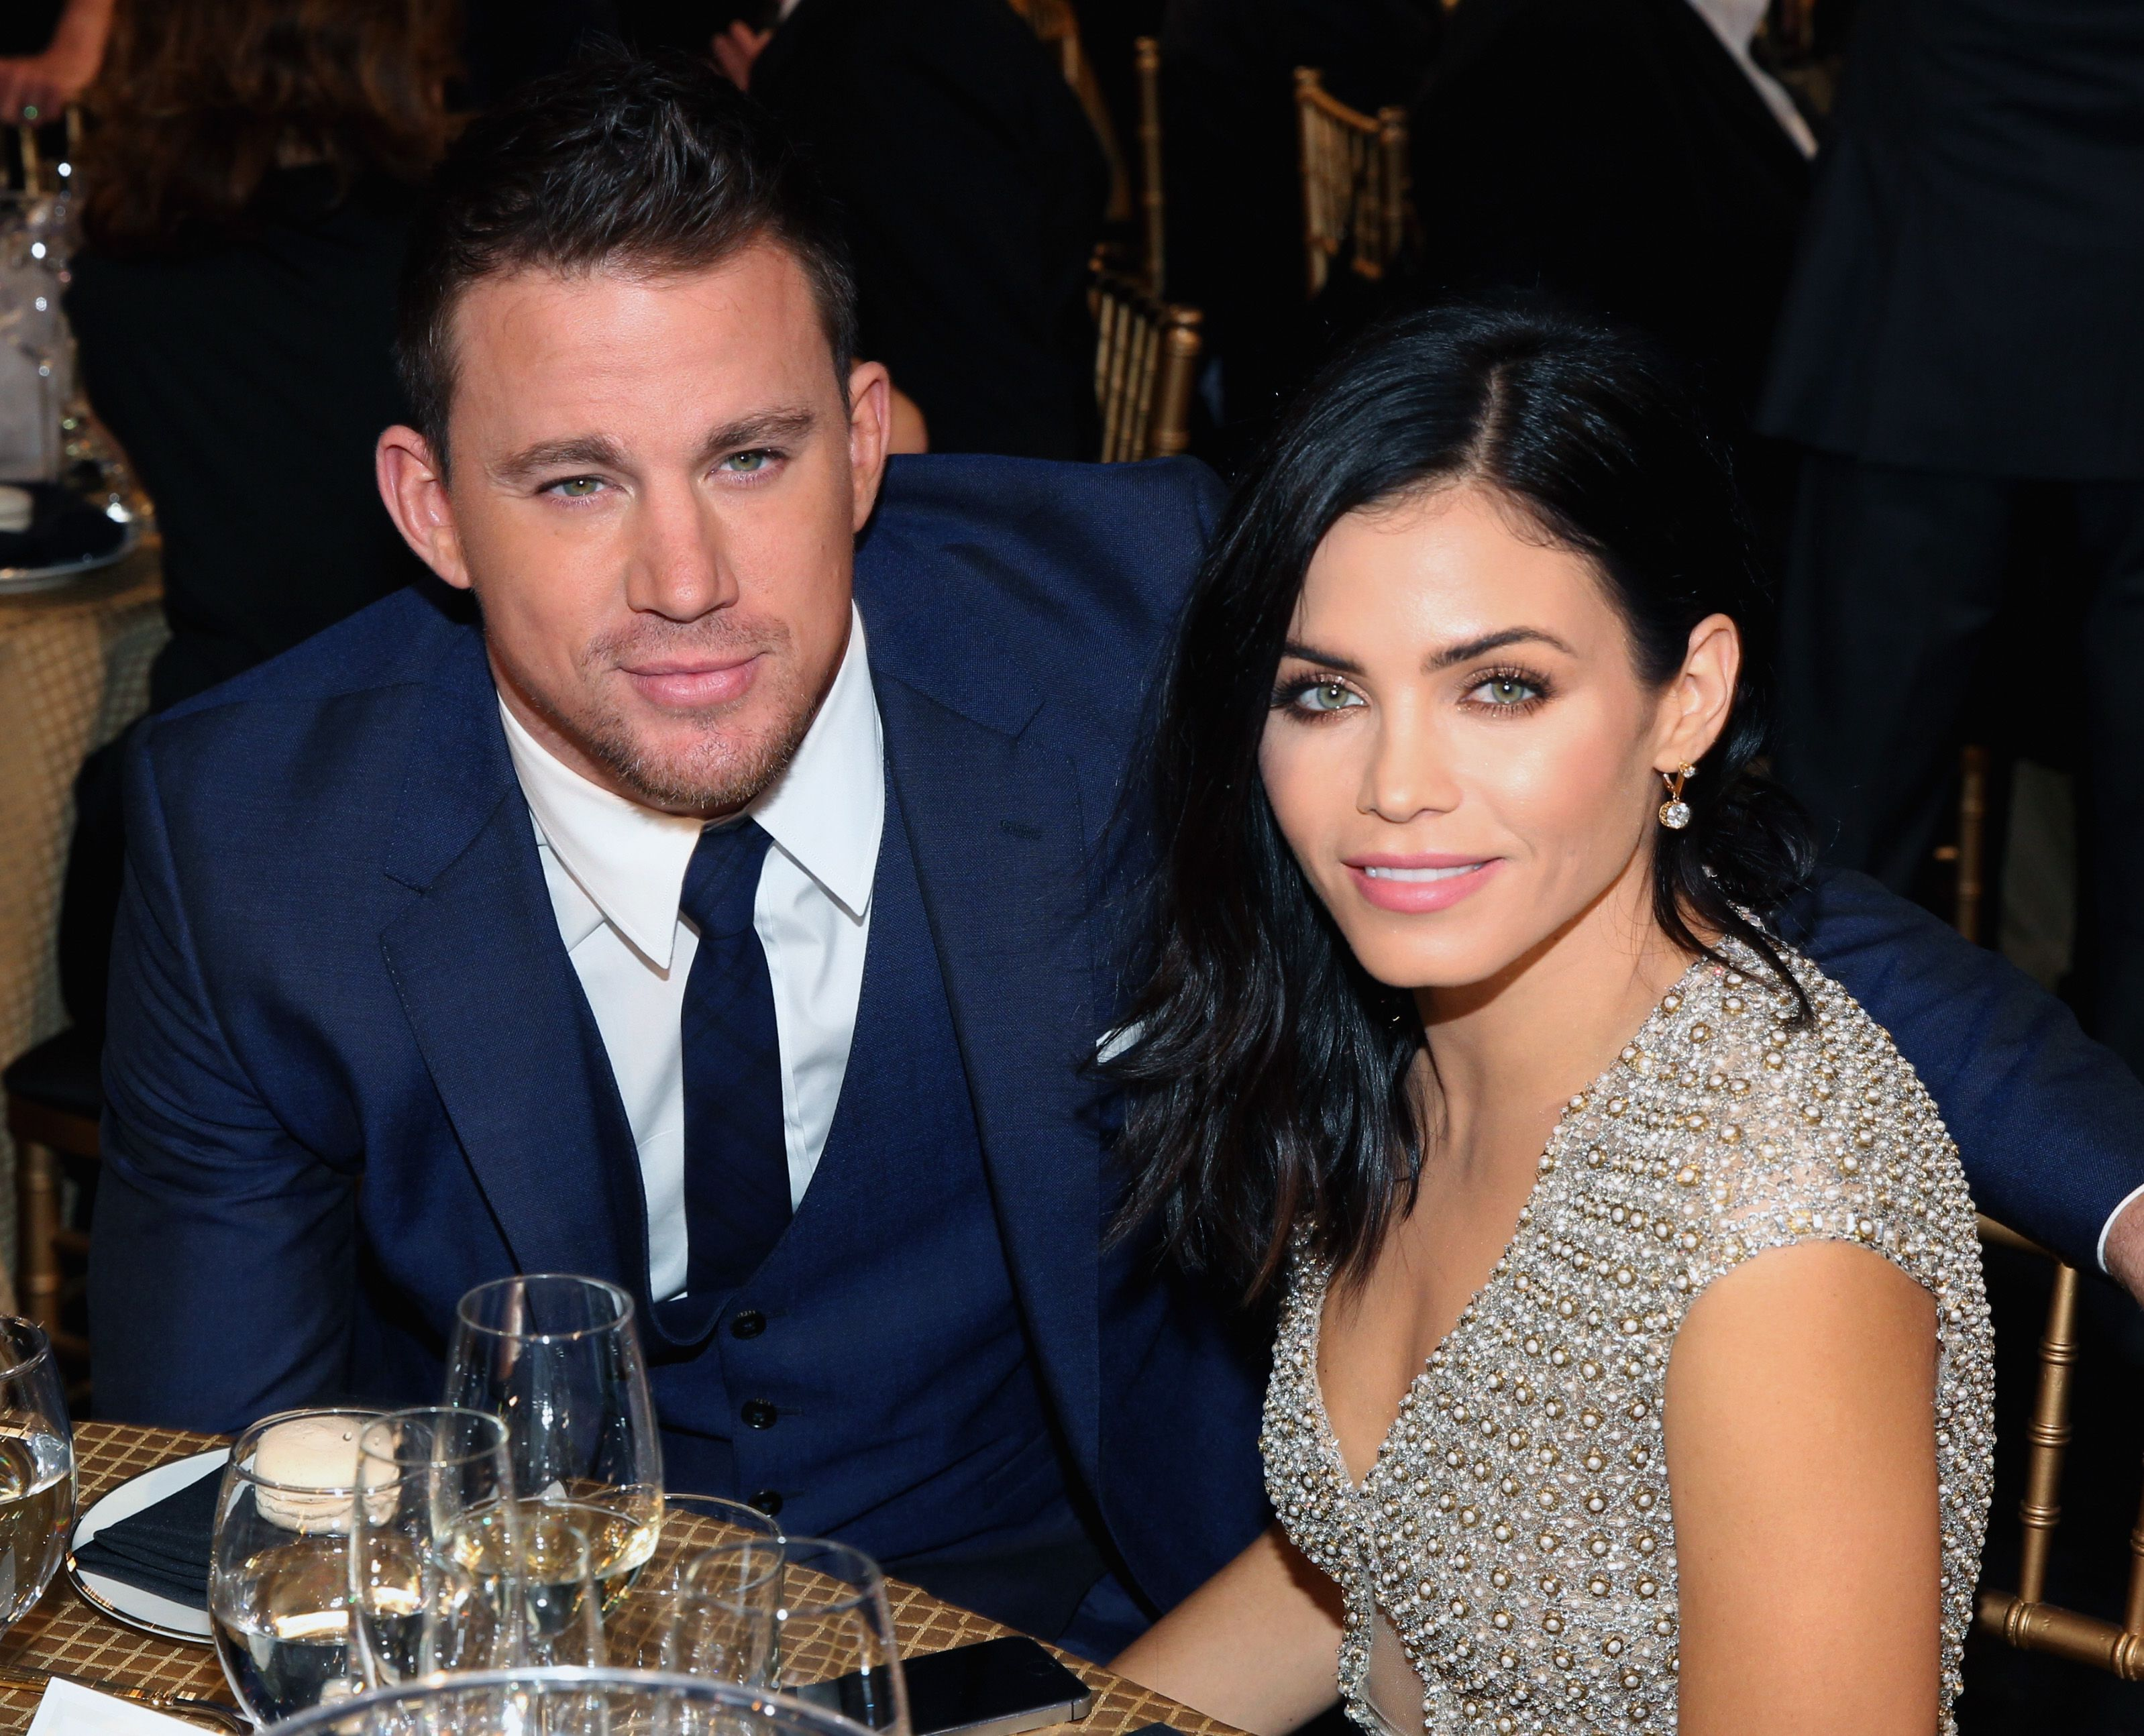 How Channing Tatum Really Feels About His Ex Jenna Dewan's Engagement